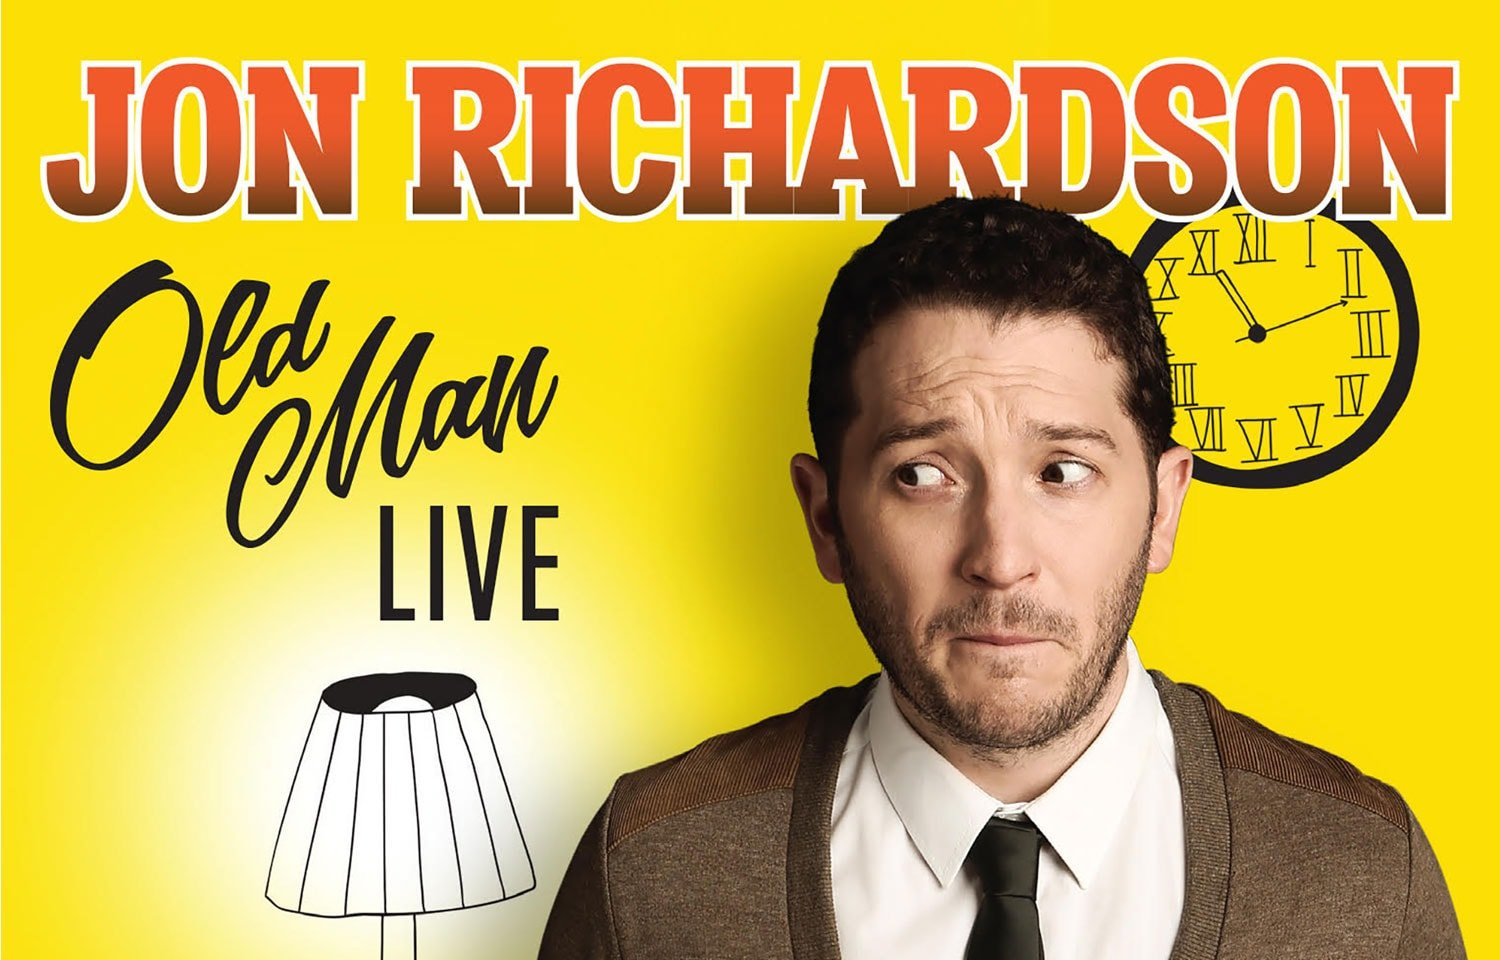 JON RICHARDSON'S OLD MAN TO AIR ON CHANNEL 4 THIS FRIDAY